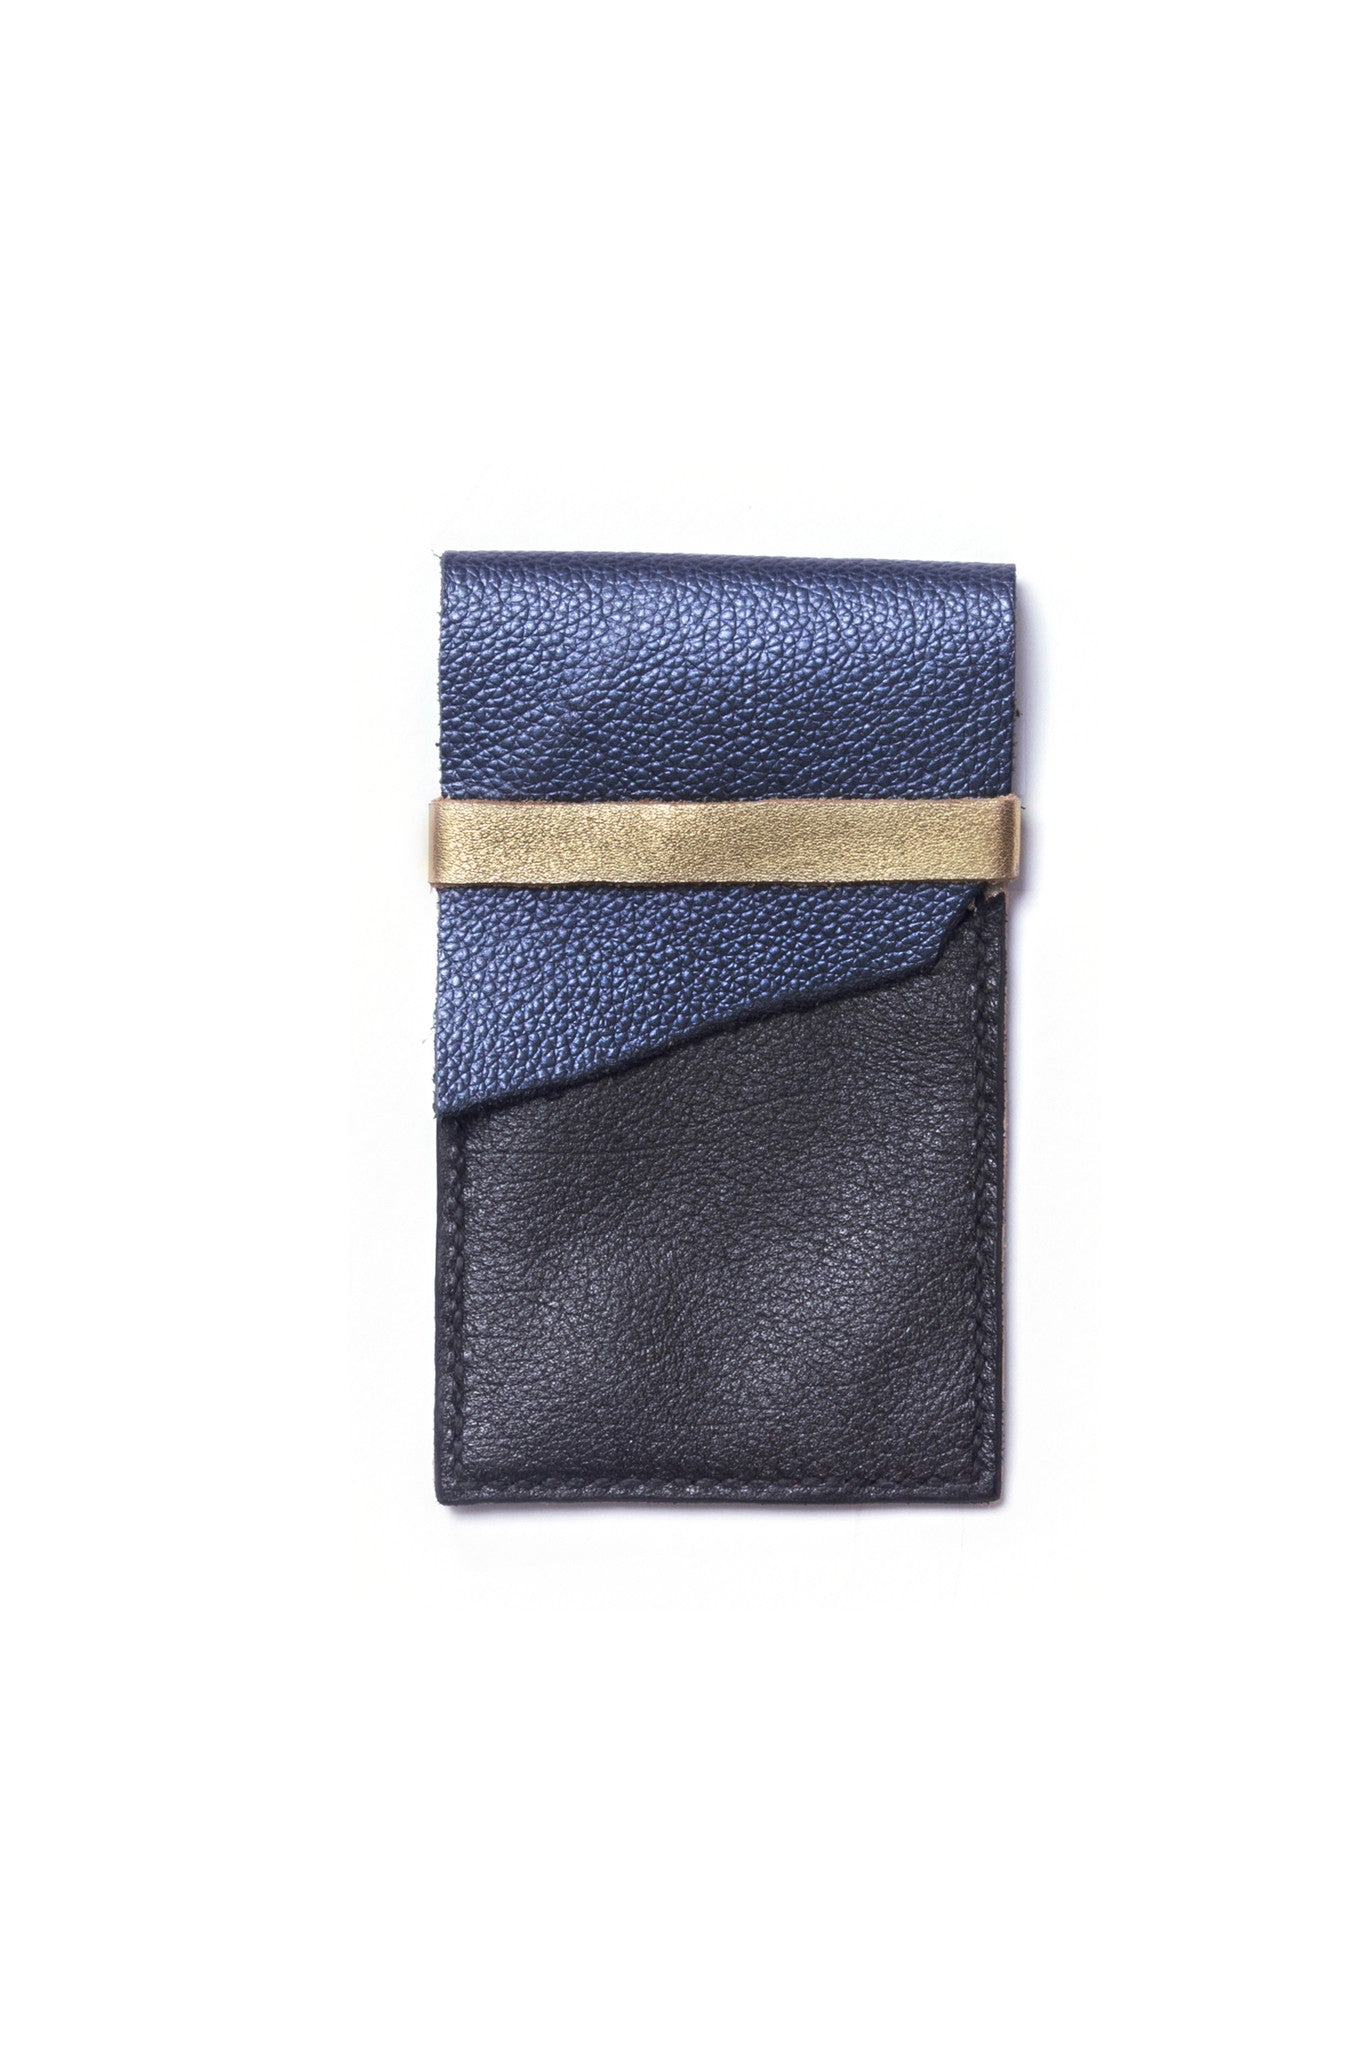 Stella Tricolored Black Metallic Blue Gold Leather Raw iPhone Sleeve by Liana Rosa